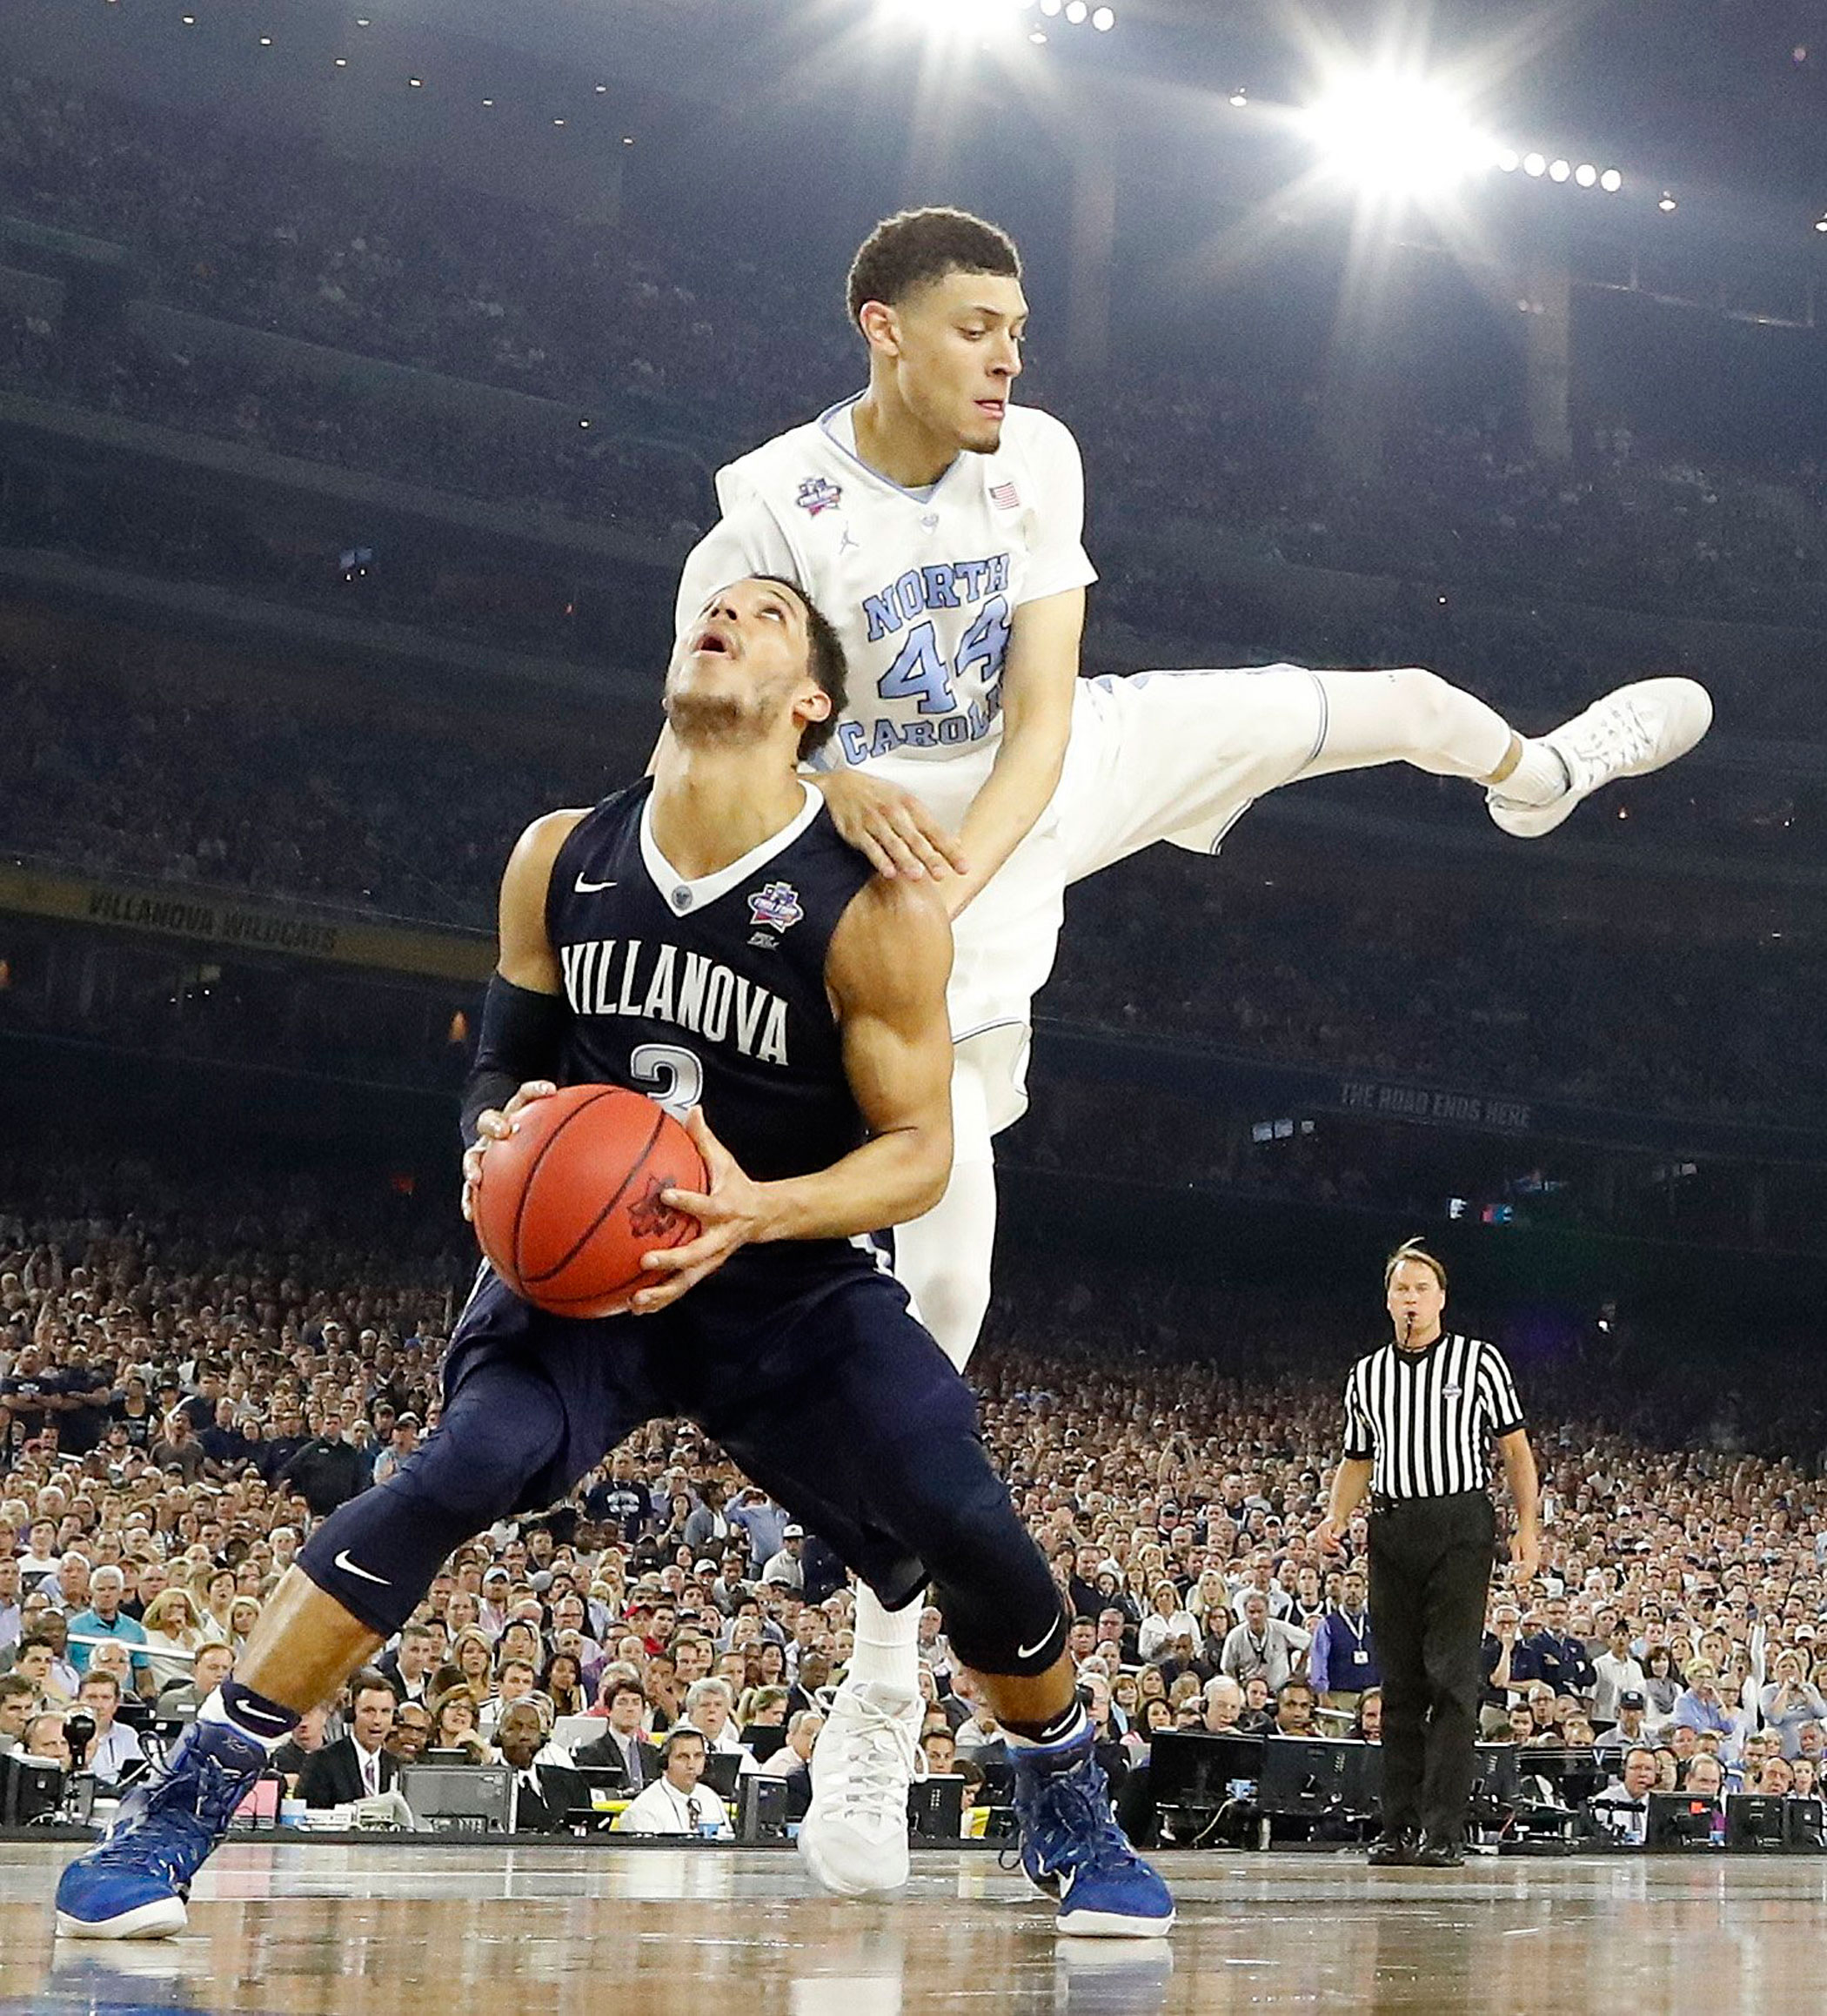 Villanova guard Josh Hart (3) prepares to shoots as North Carolina forward Justin Jackson (44) defends during the second half of the NCAA college basketball National Championship  game on April 4, 2016 in Houston.